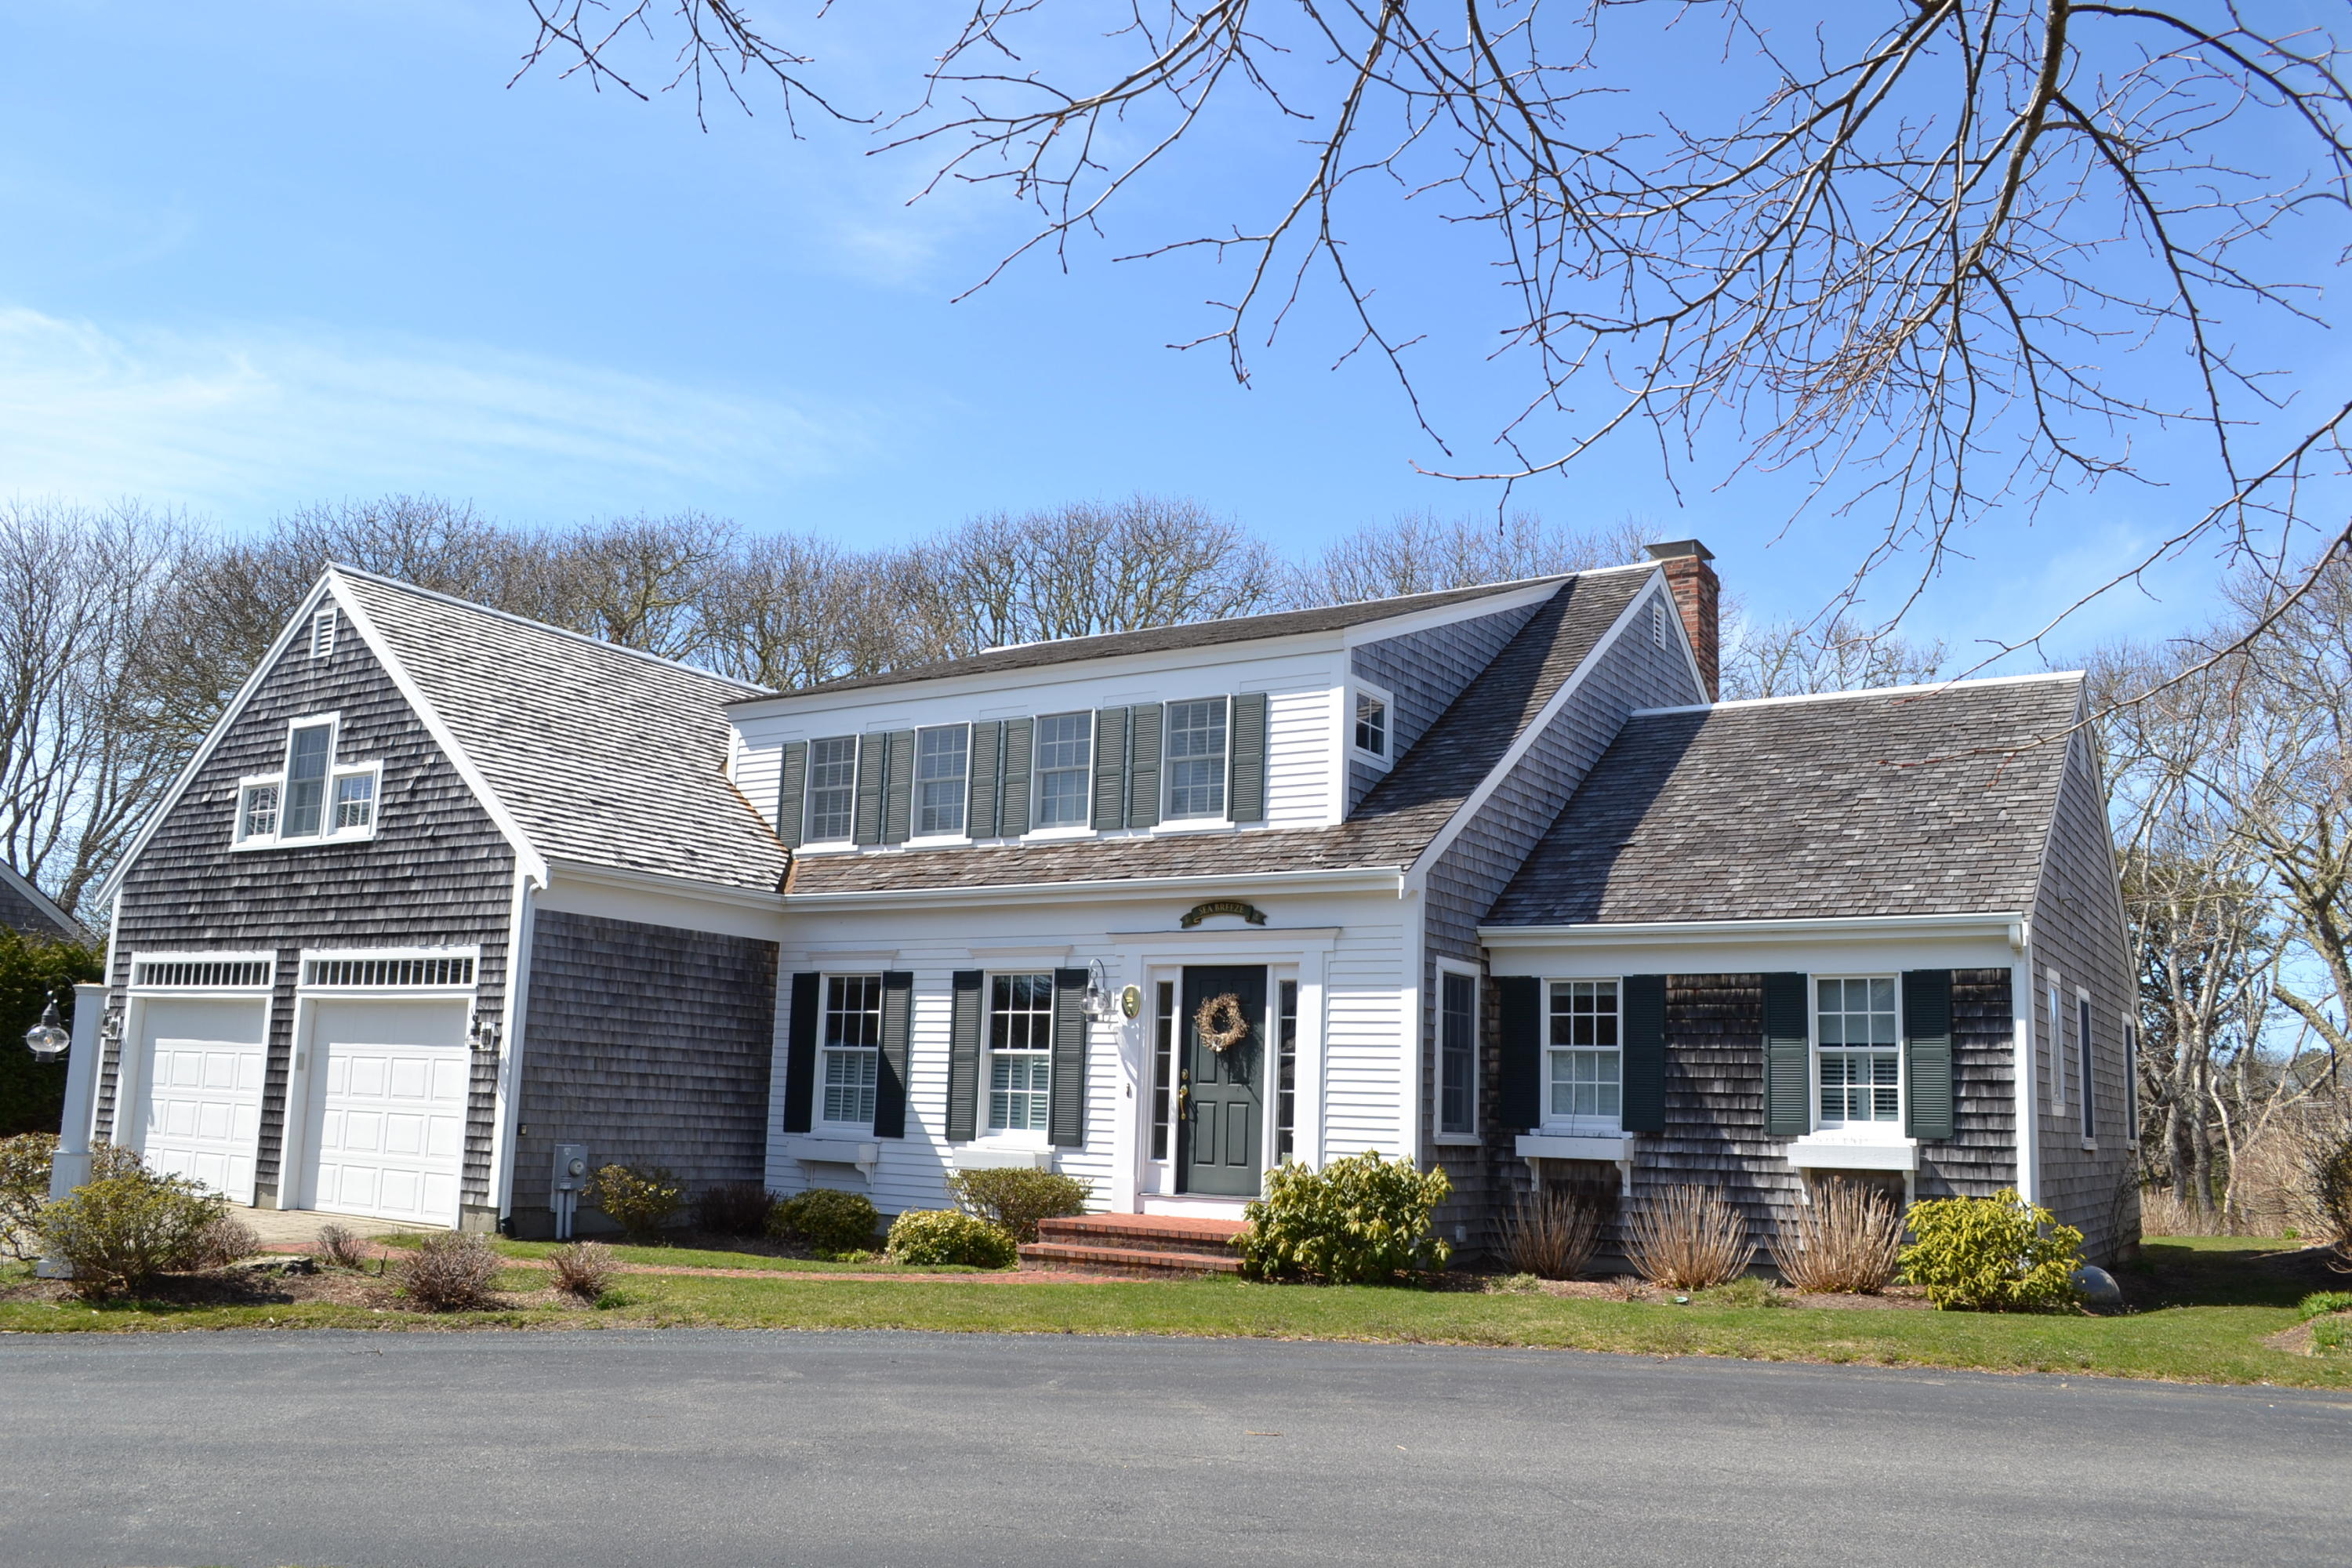 7 Seaport Lane, Harwich Port MA, 02646 details